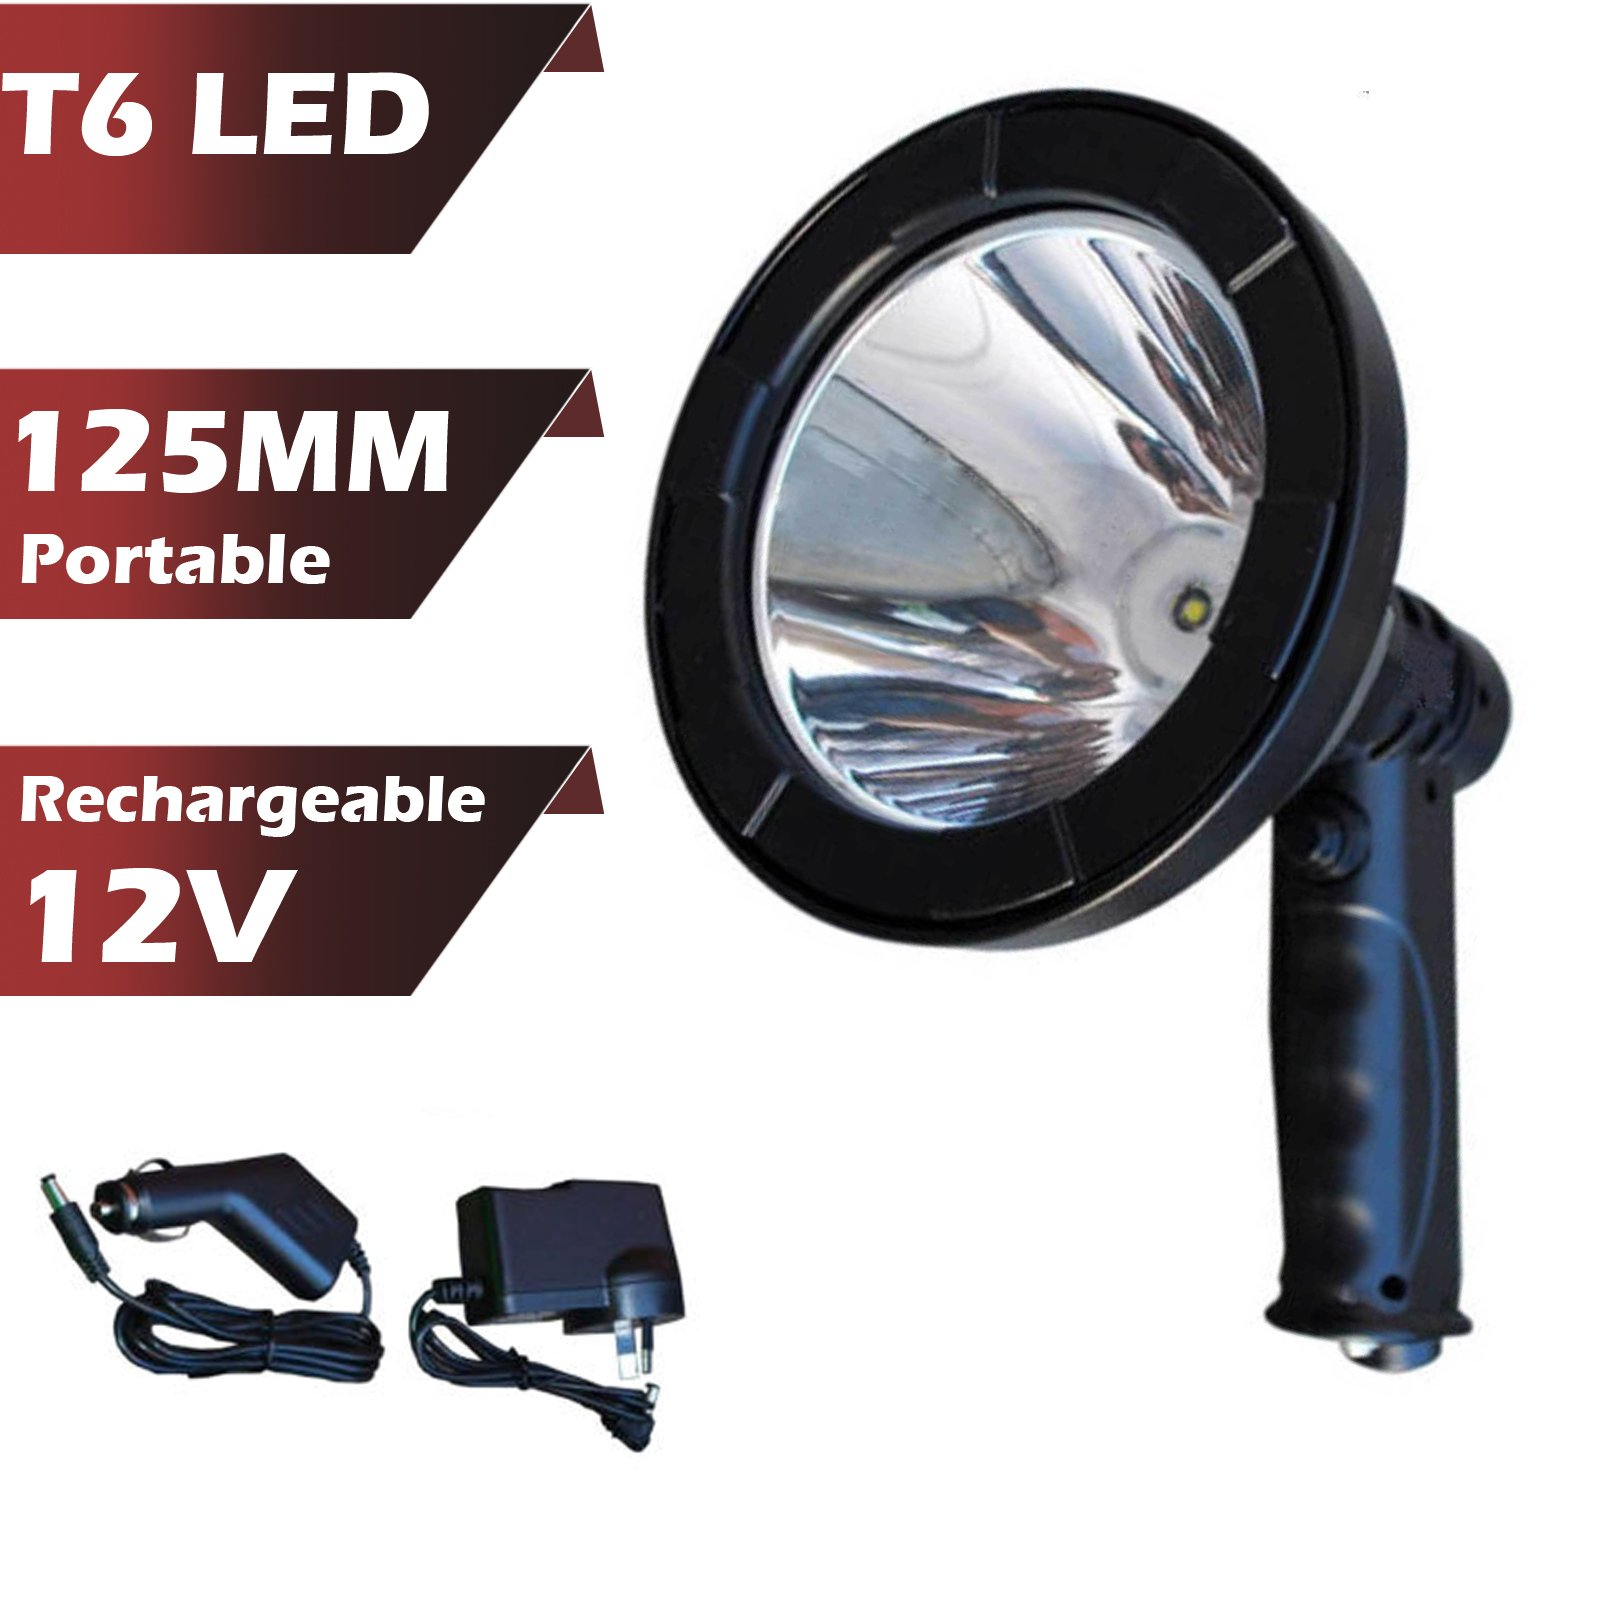 "Hand Held Spotlight Rechargeable T6 LED 5"" 2500lm Ultra Bright for Emergency Search Work Boats Off-road Vehicles"